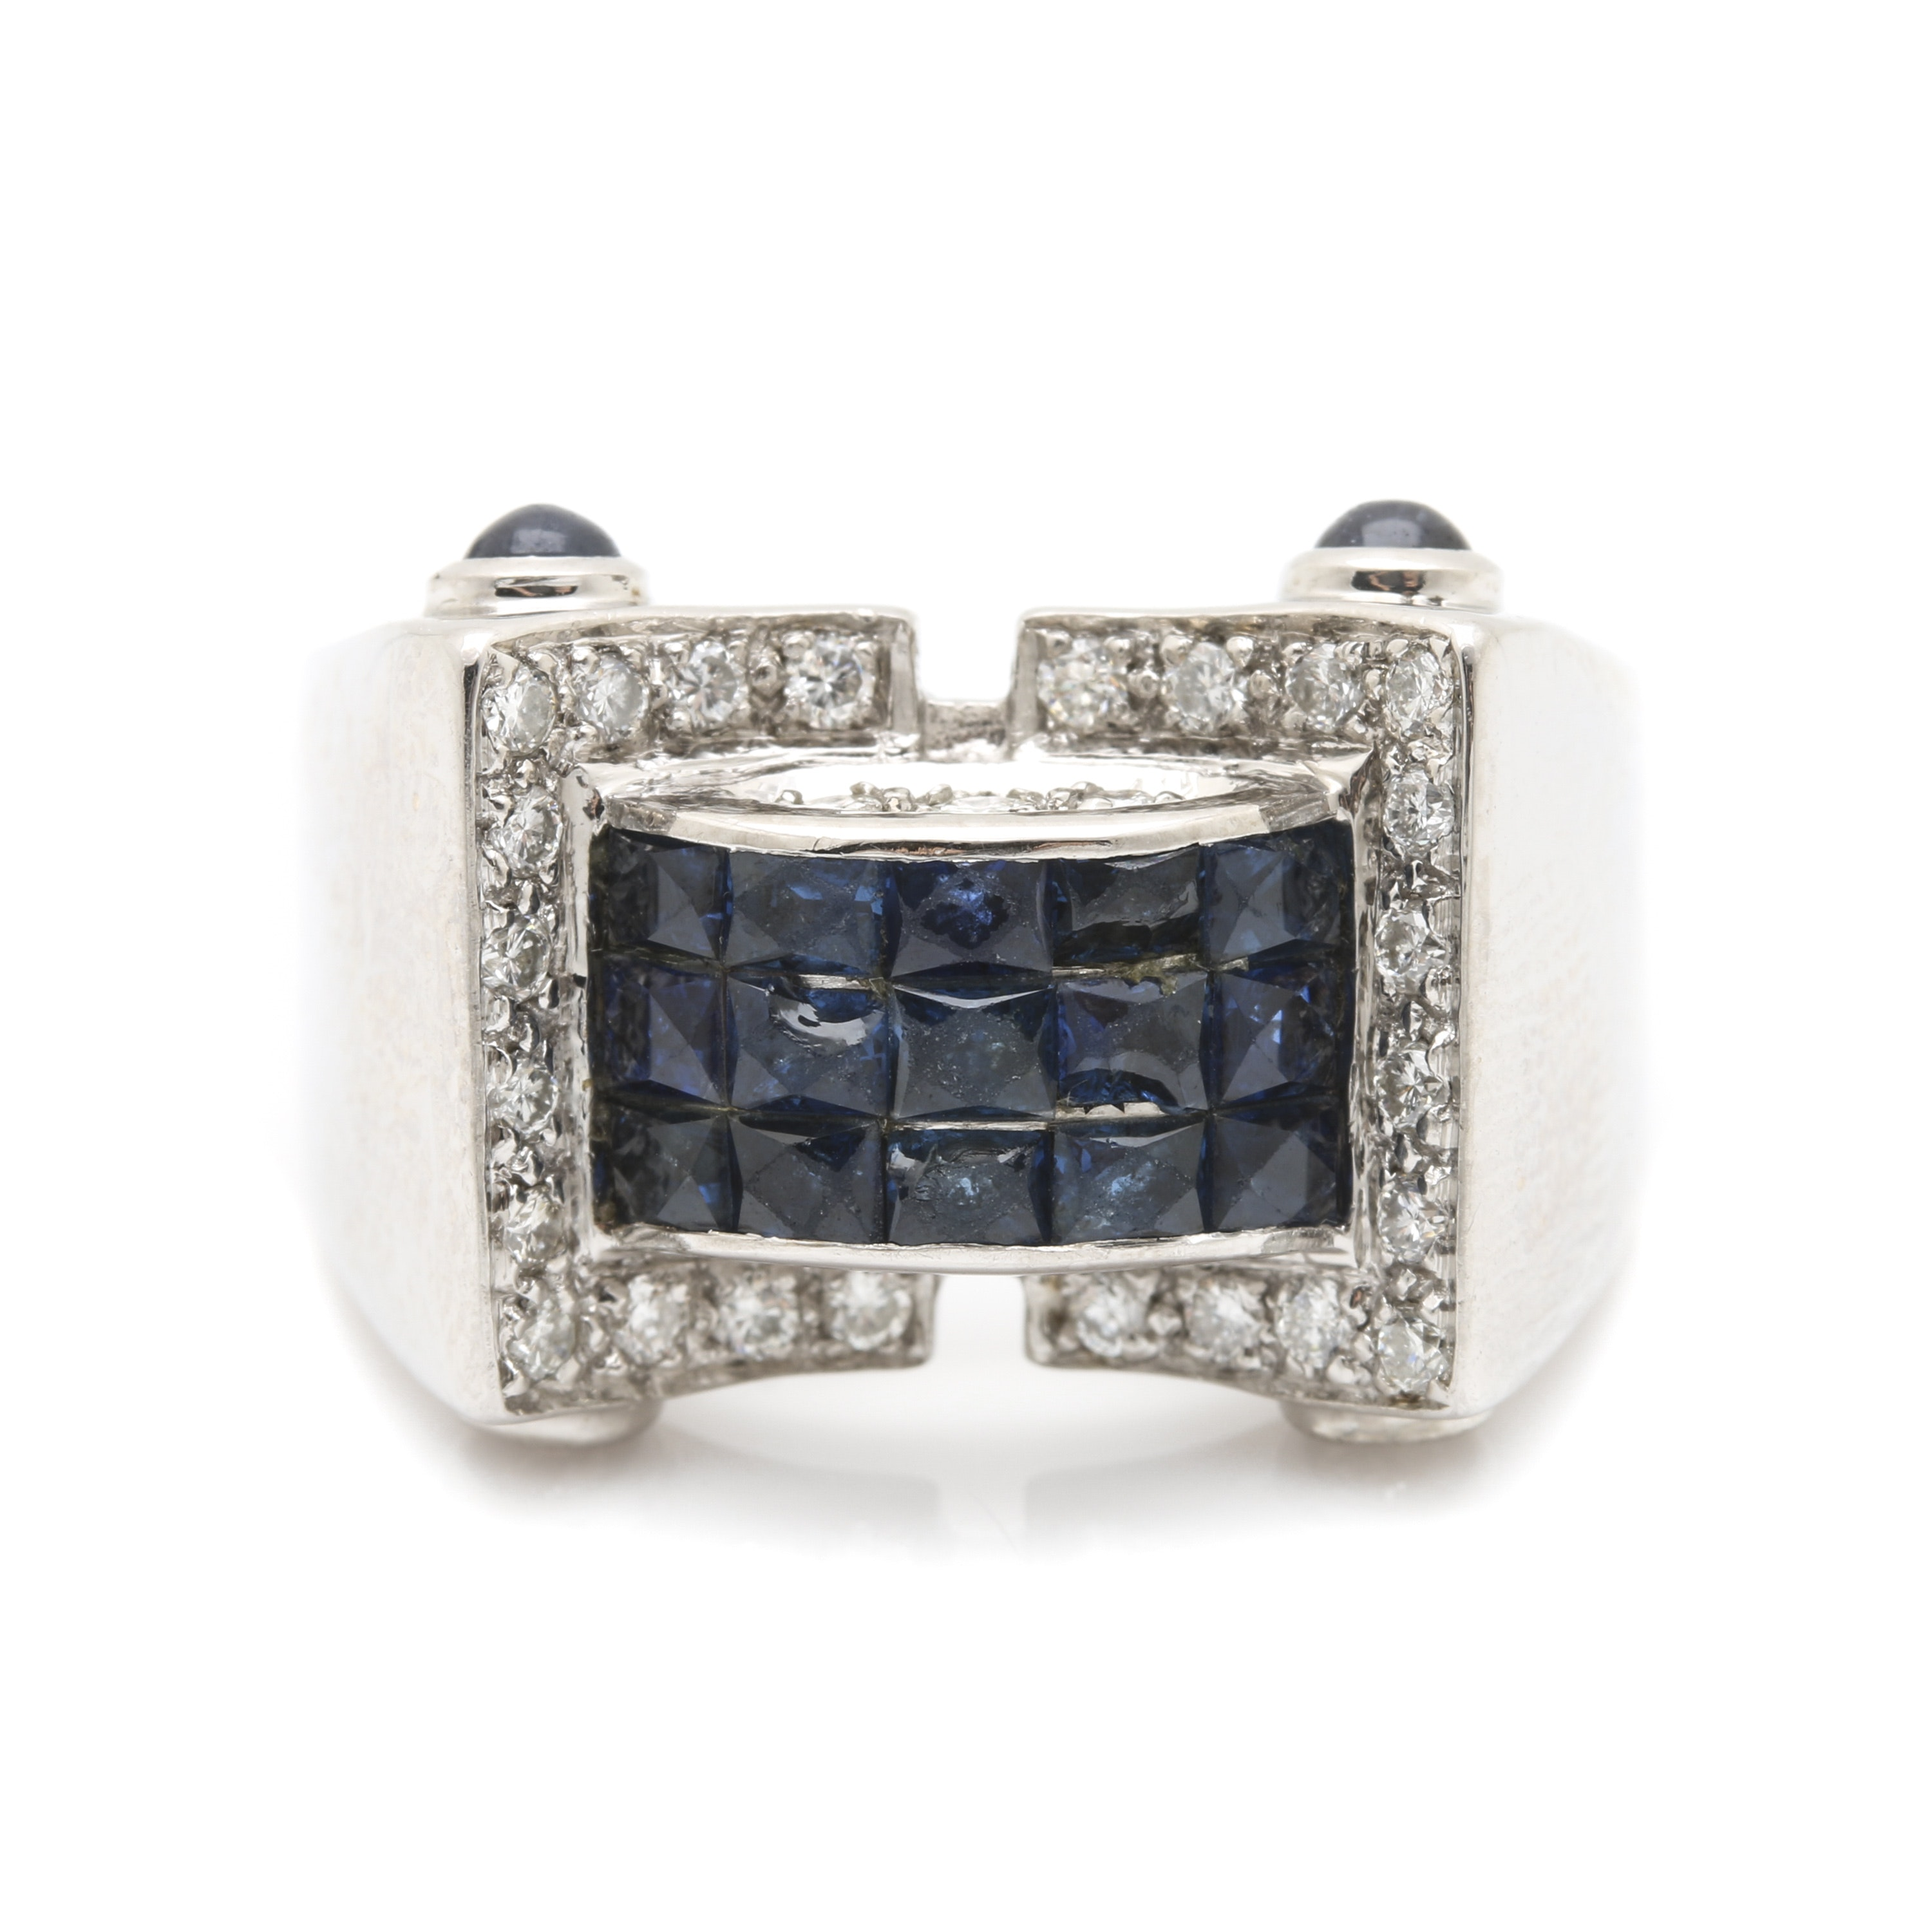 18K White Gold Sapphire and Diamond Ring from Estate of Herb Reed